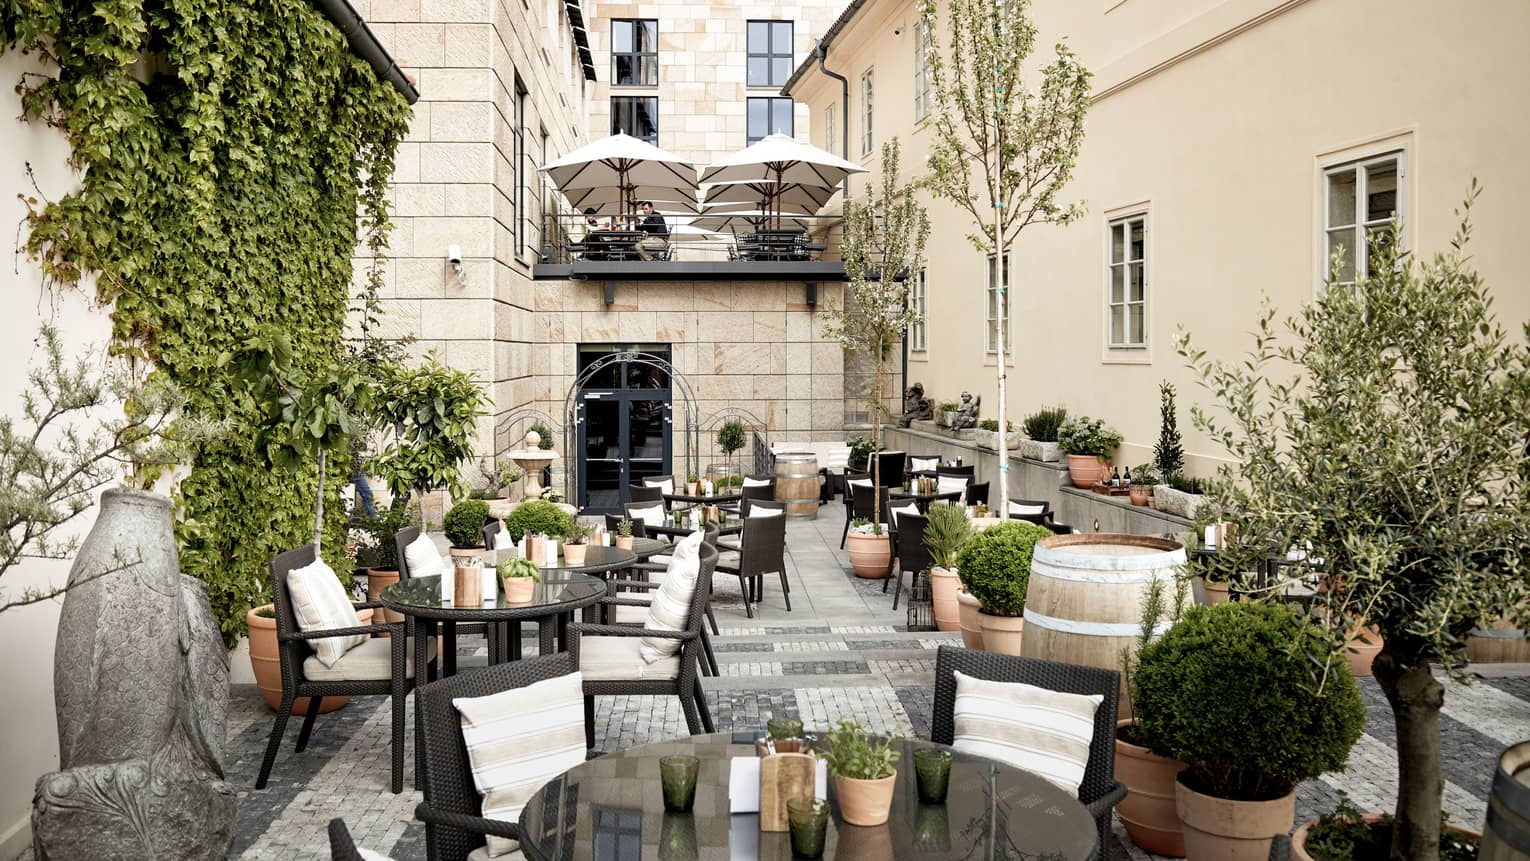 Rooftop terrace restaurant, round black rattan tables, chairs, ivy wall, potted trees